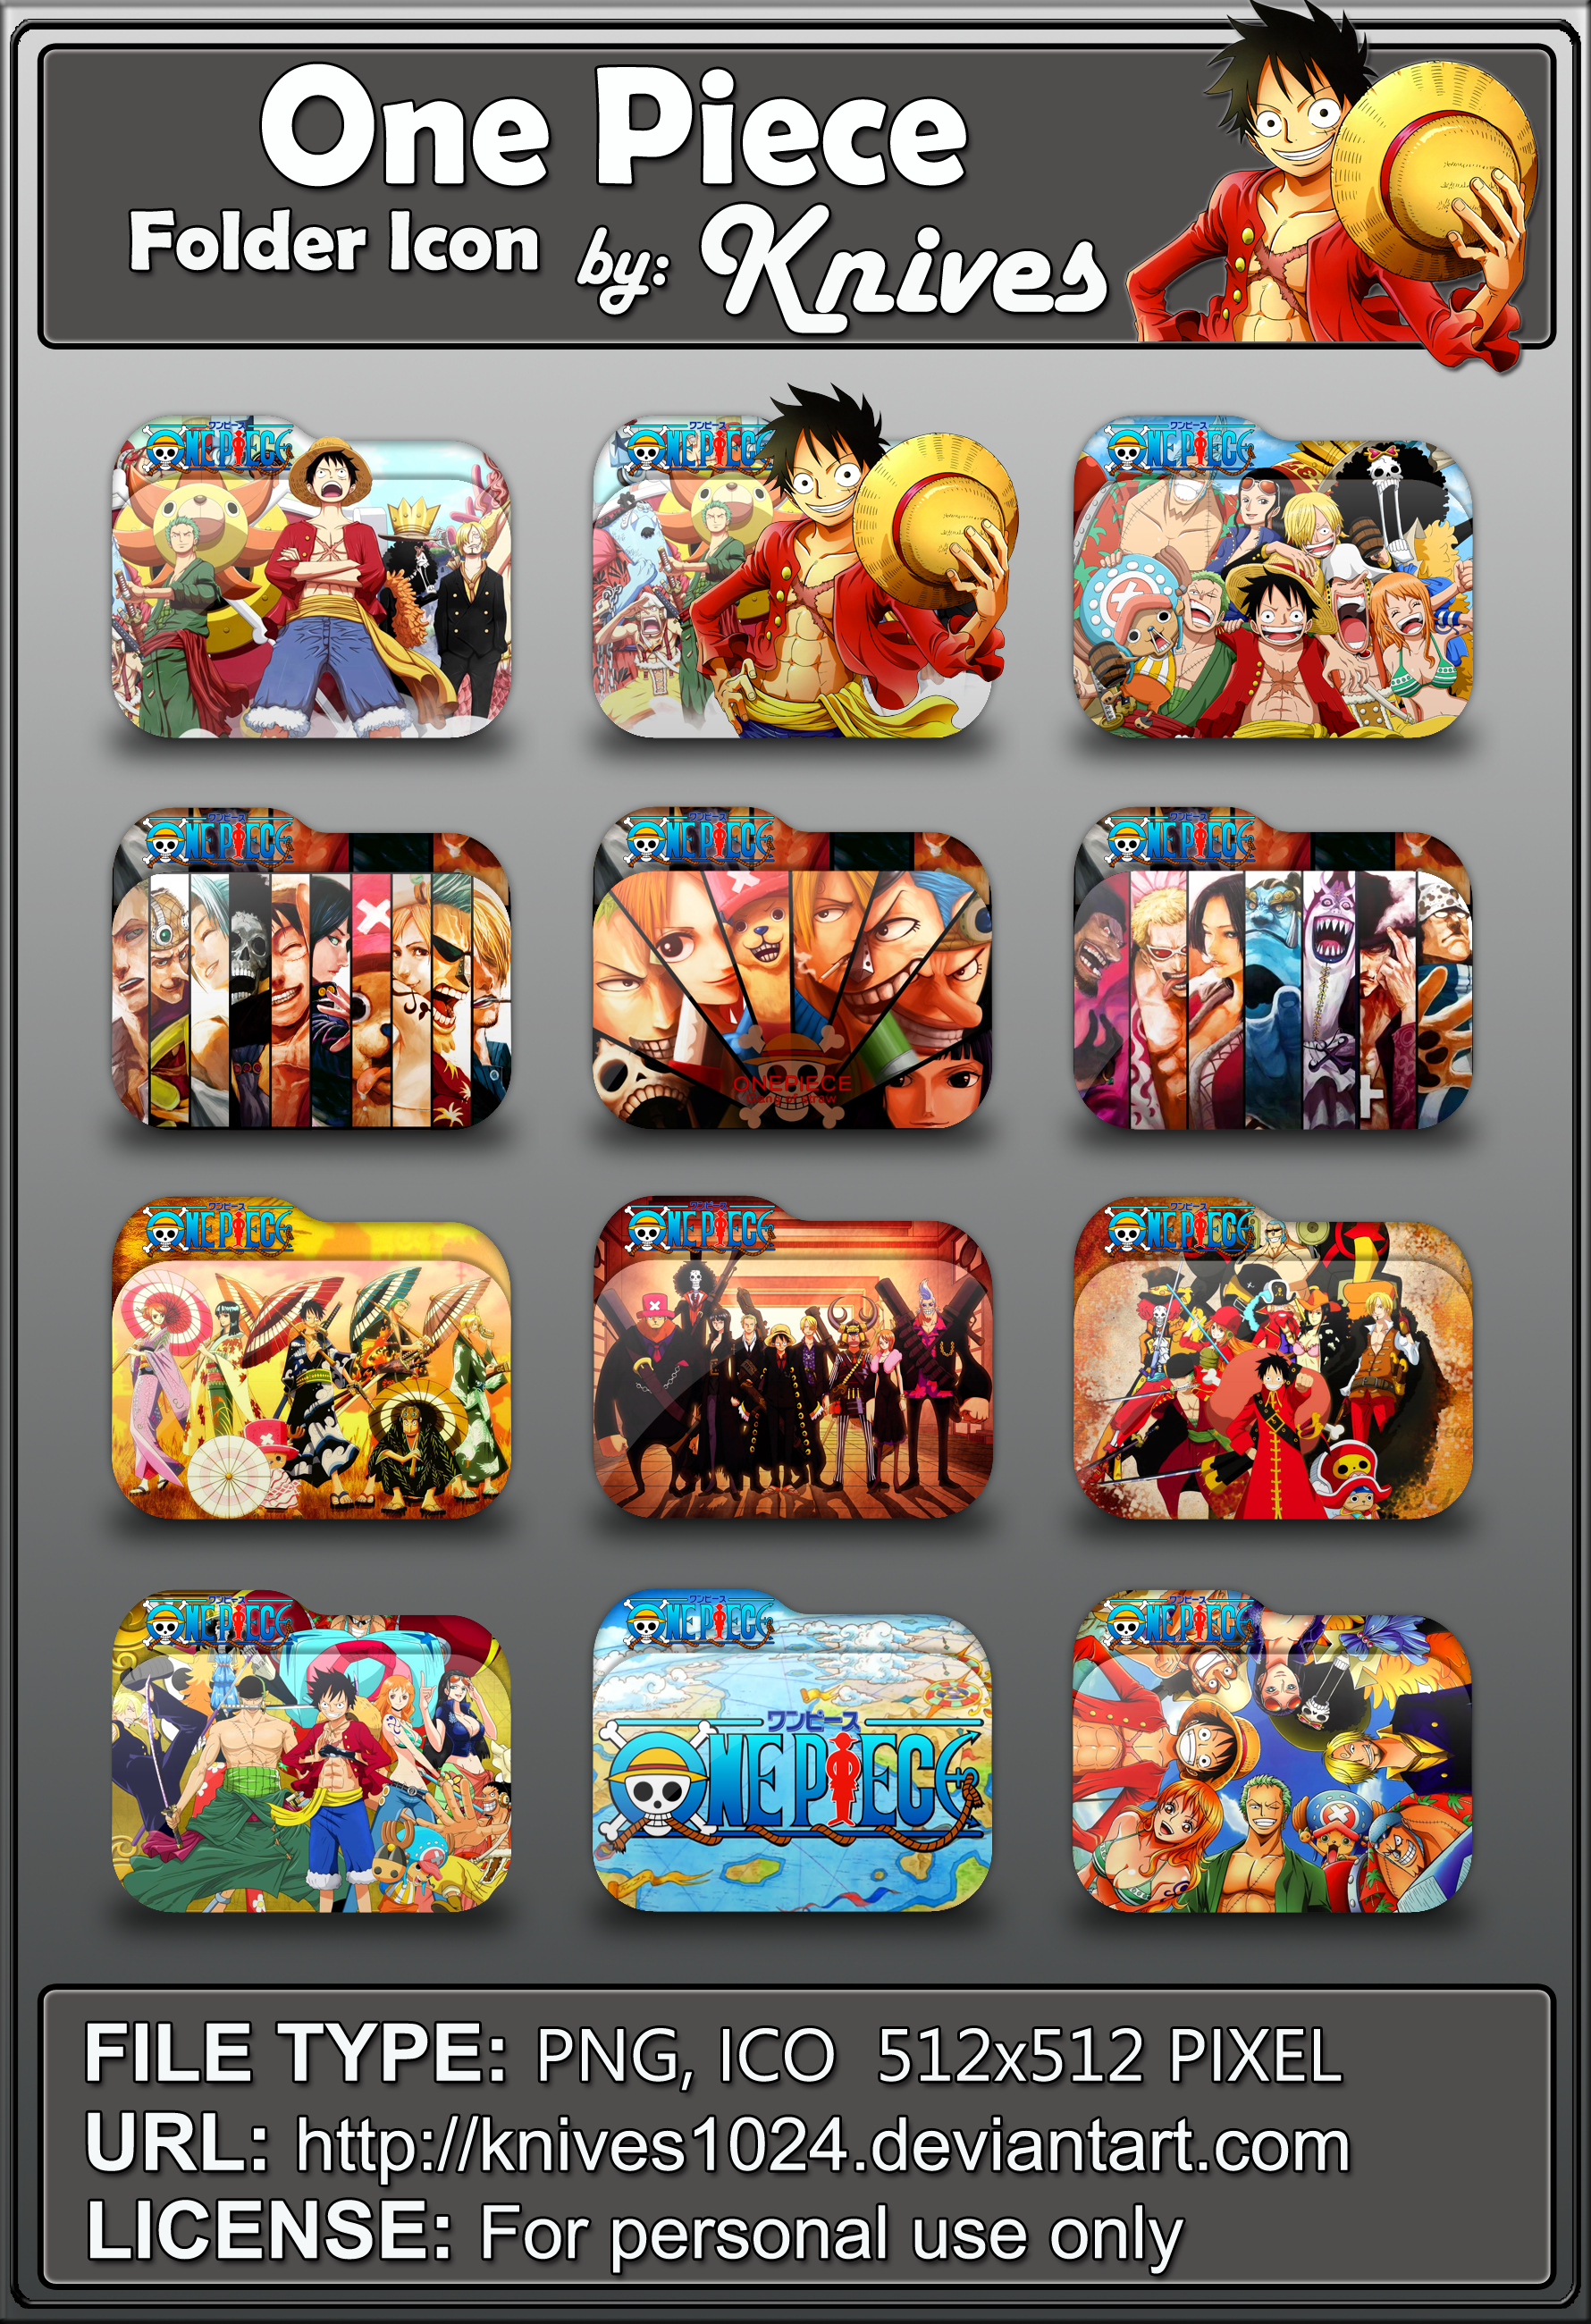 One Piece Anime Folder Icon By Knives By Knives1024 On